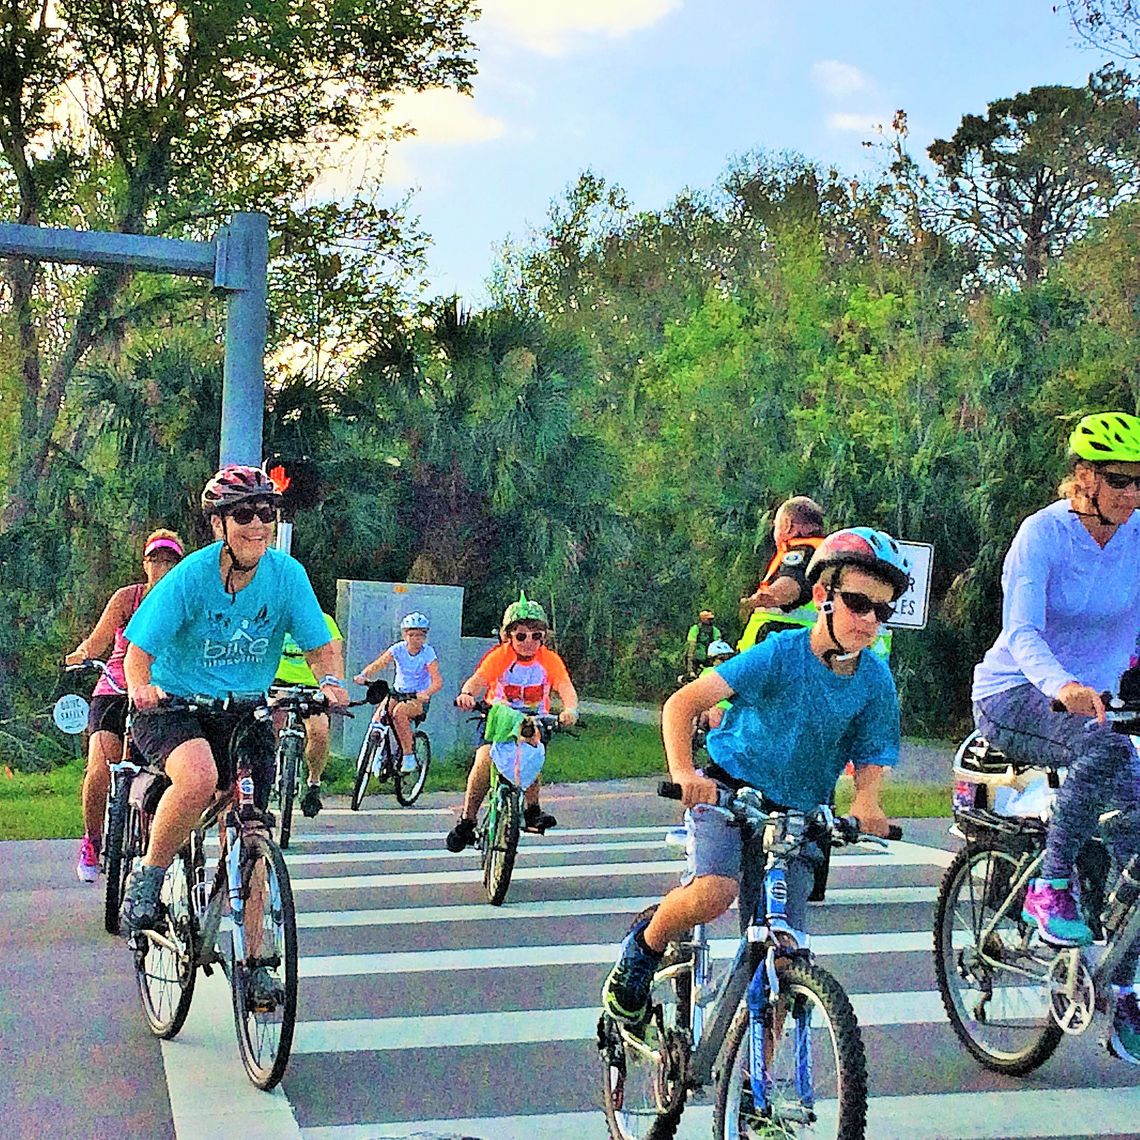 Cyclists of all ages test out the new trail, which intersects with Florida's Coast to Coast Trail (220 miles), the St. Johns River to Sea Loop Trail (260 miles) and the East Coast Greenway.